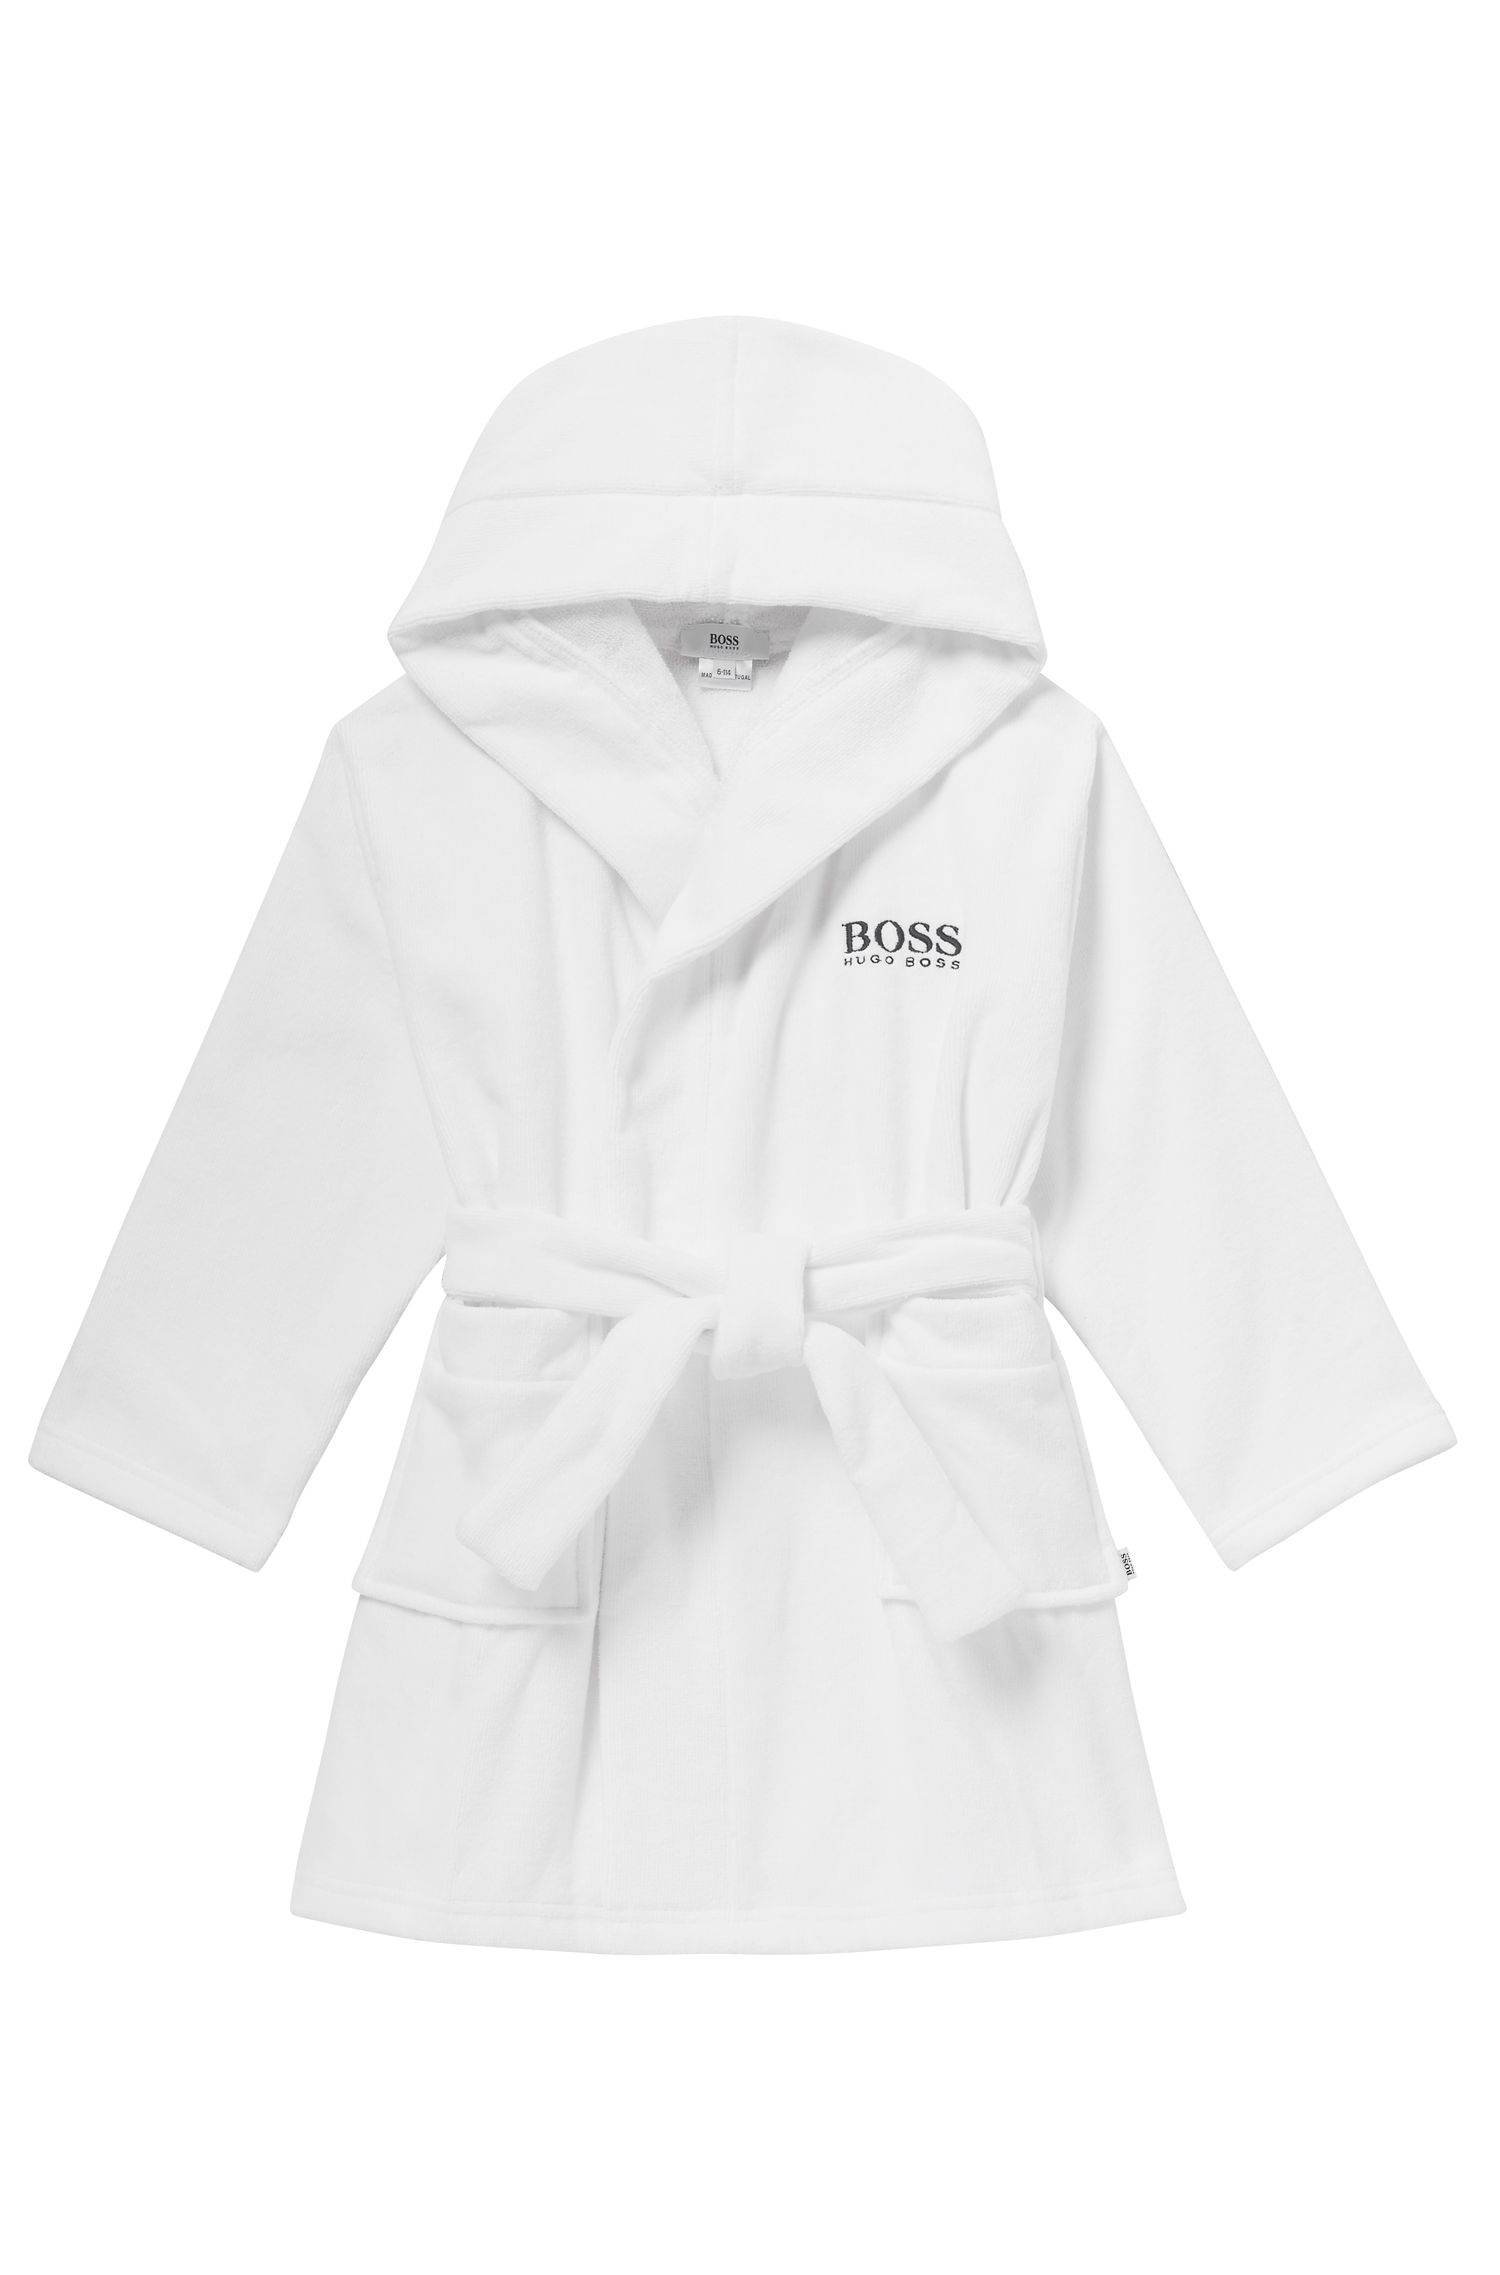 'J27V60' | Boys Cotton Terry Hooded Bath Robe